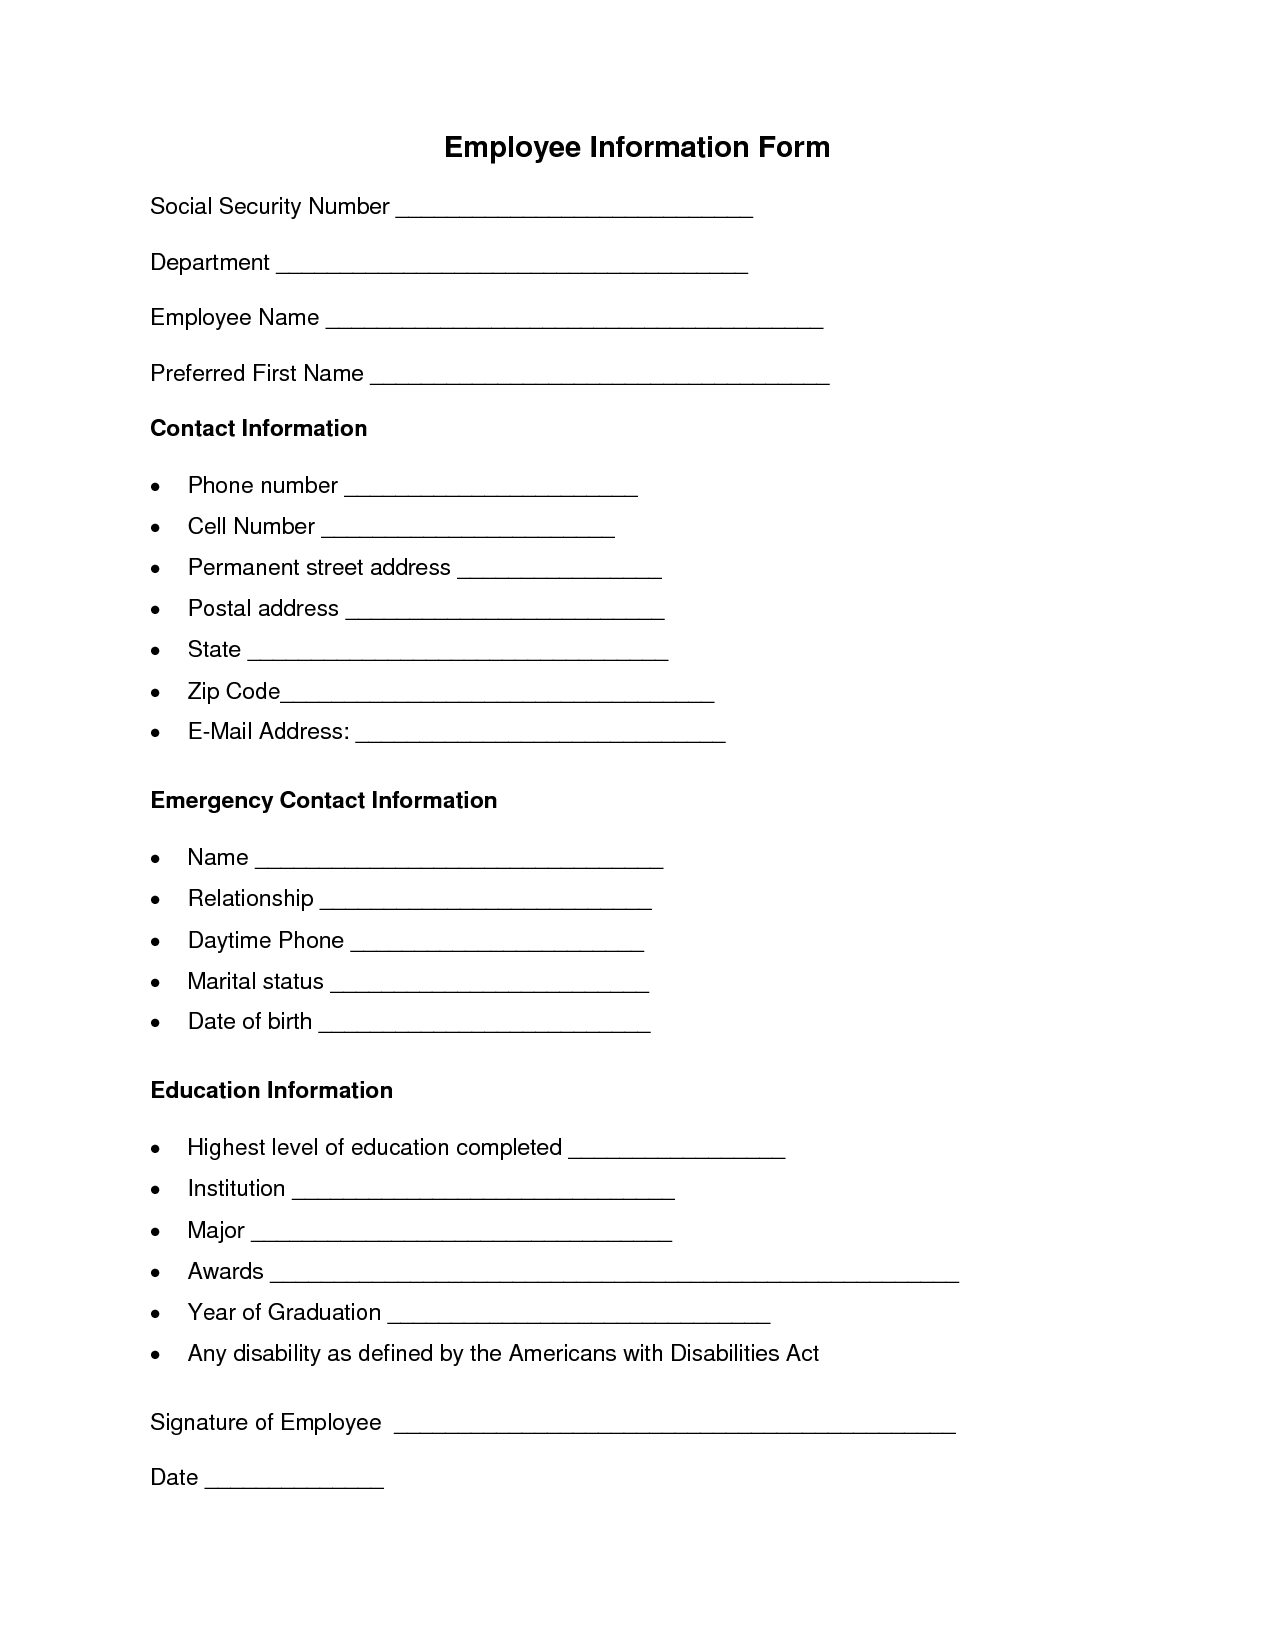 Employee Information Form